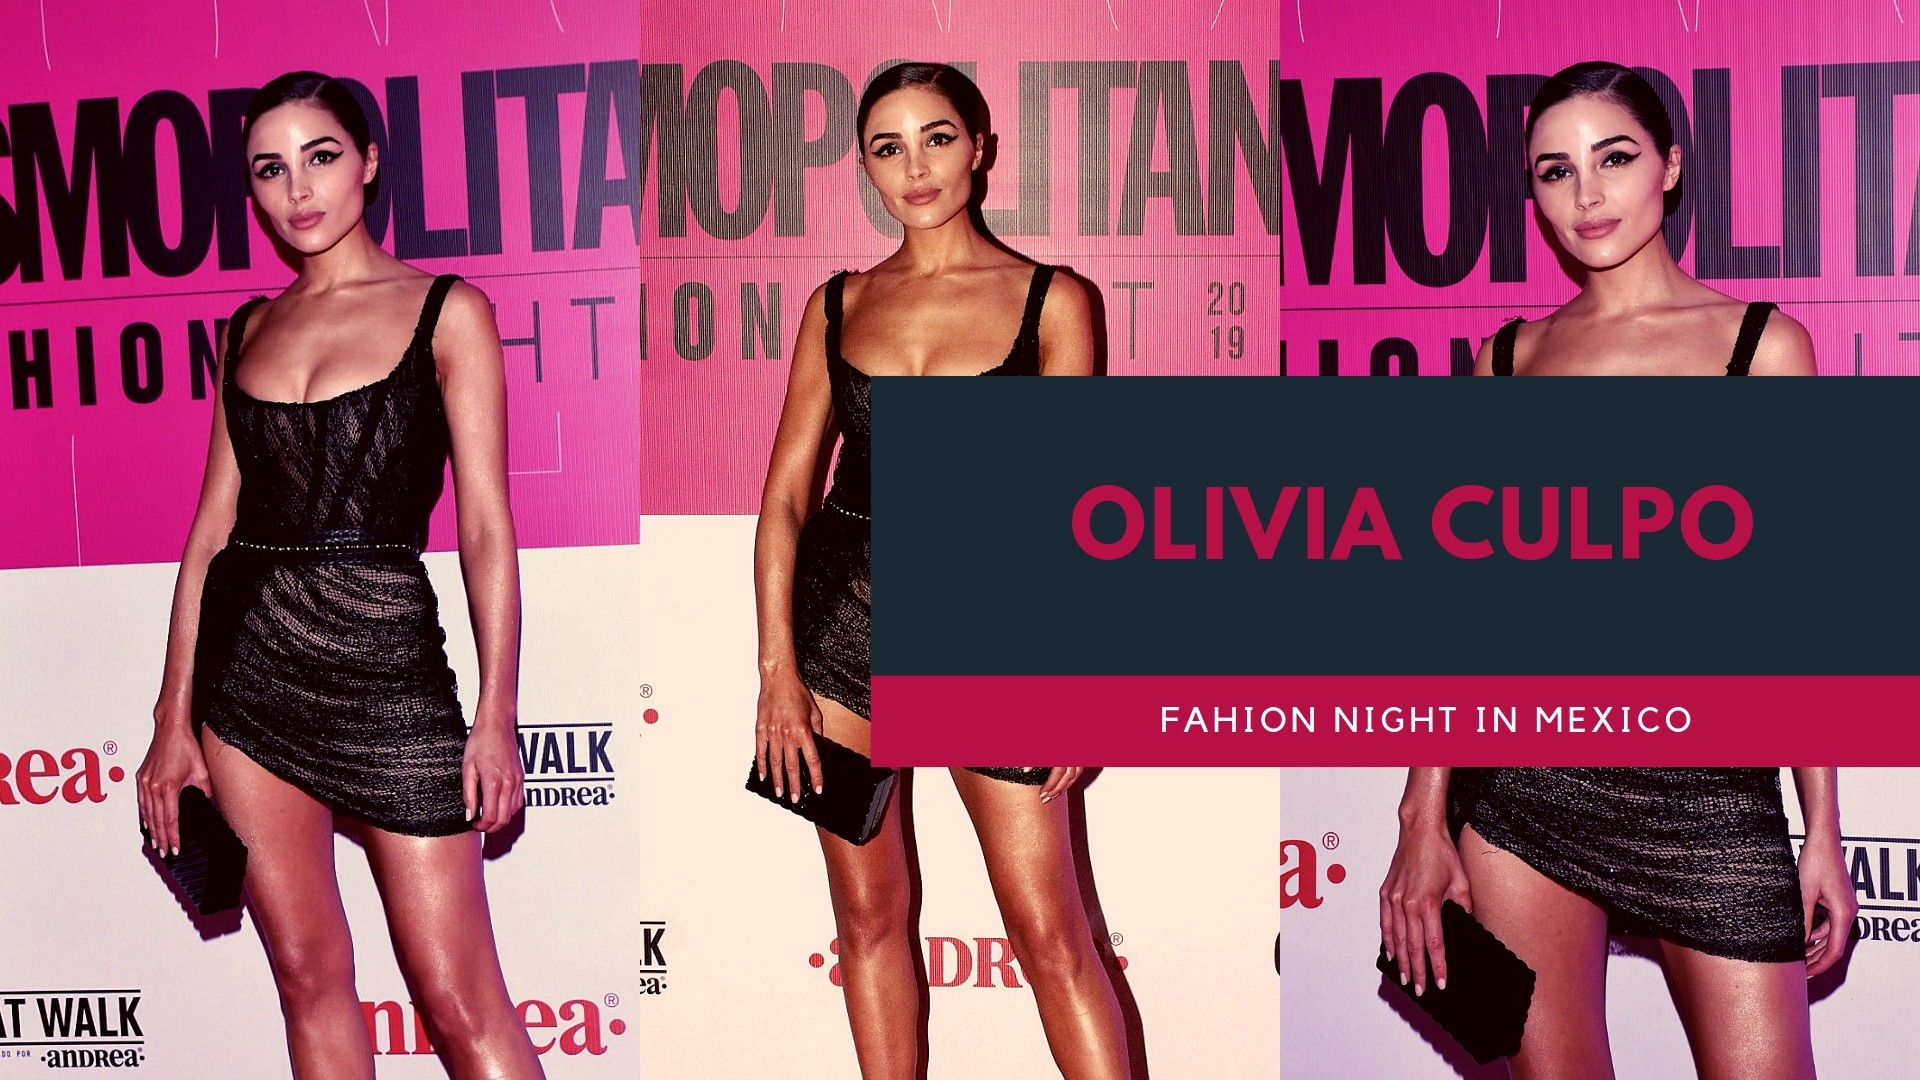 Sexy Olivia Culpo Photos - Sexy Actress Pictures | Hot Actress Pictures - ActressSnaps.com